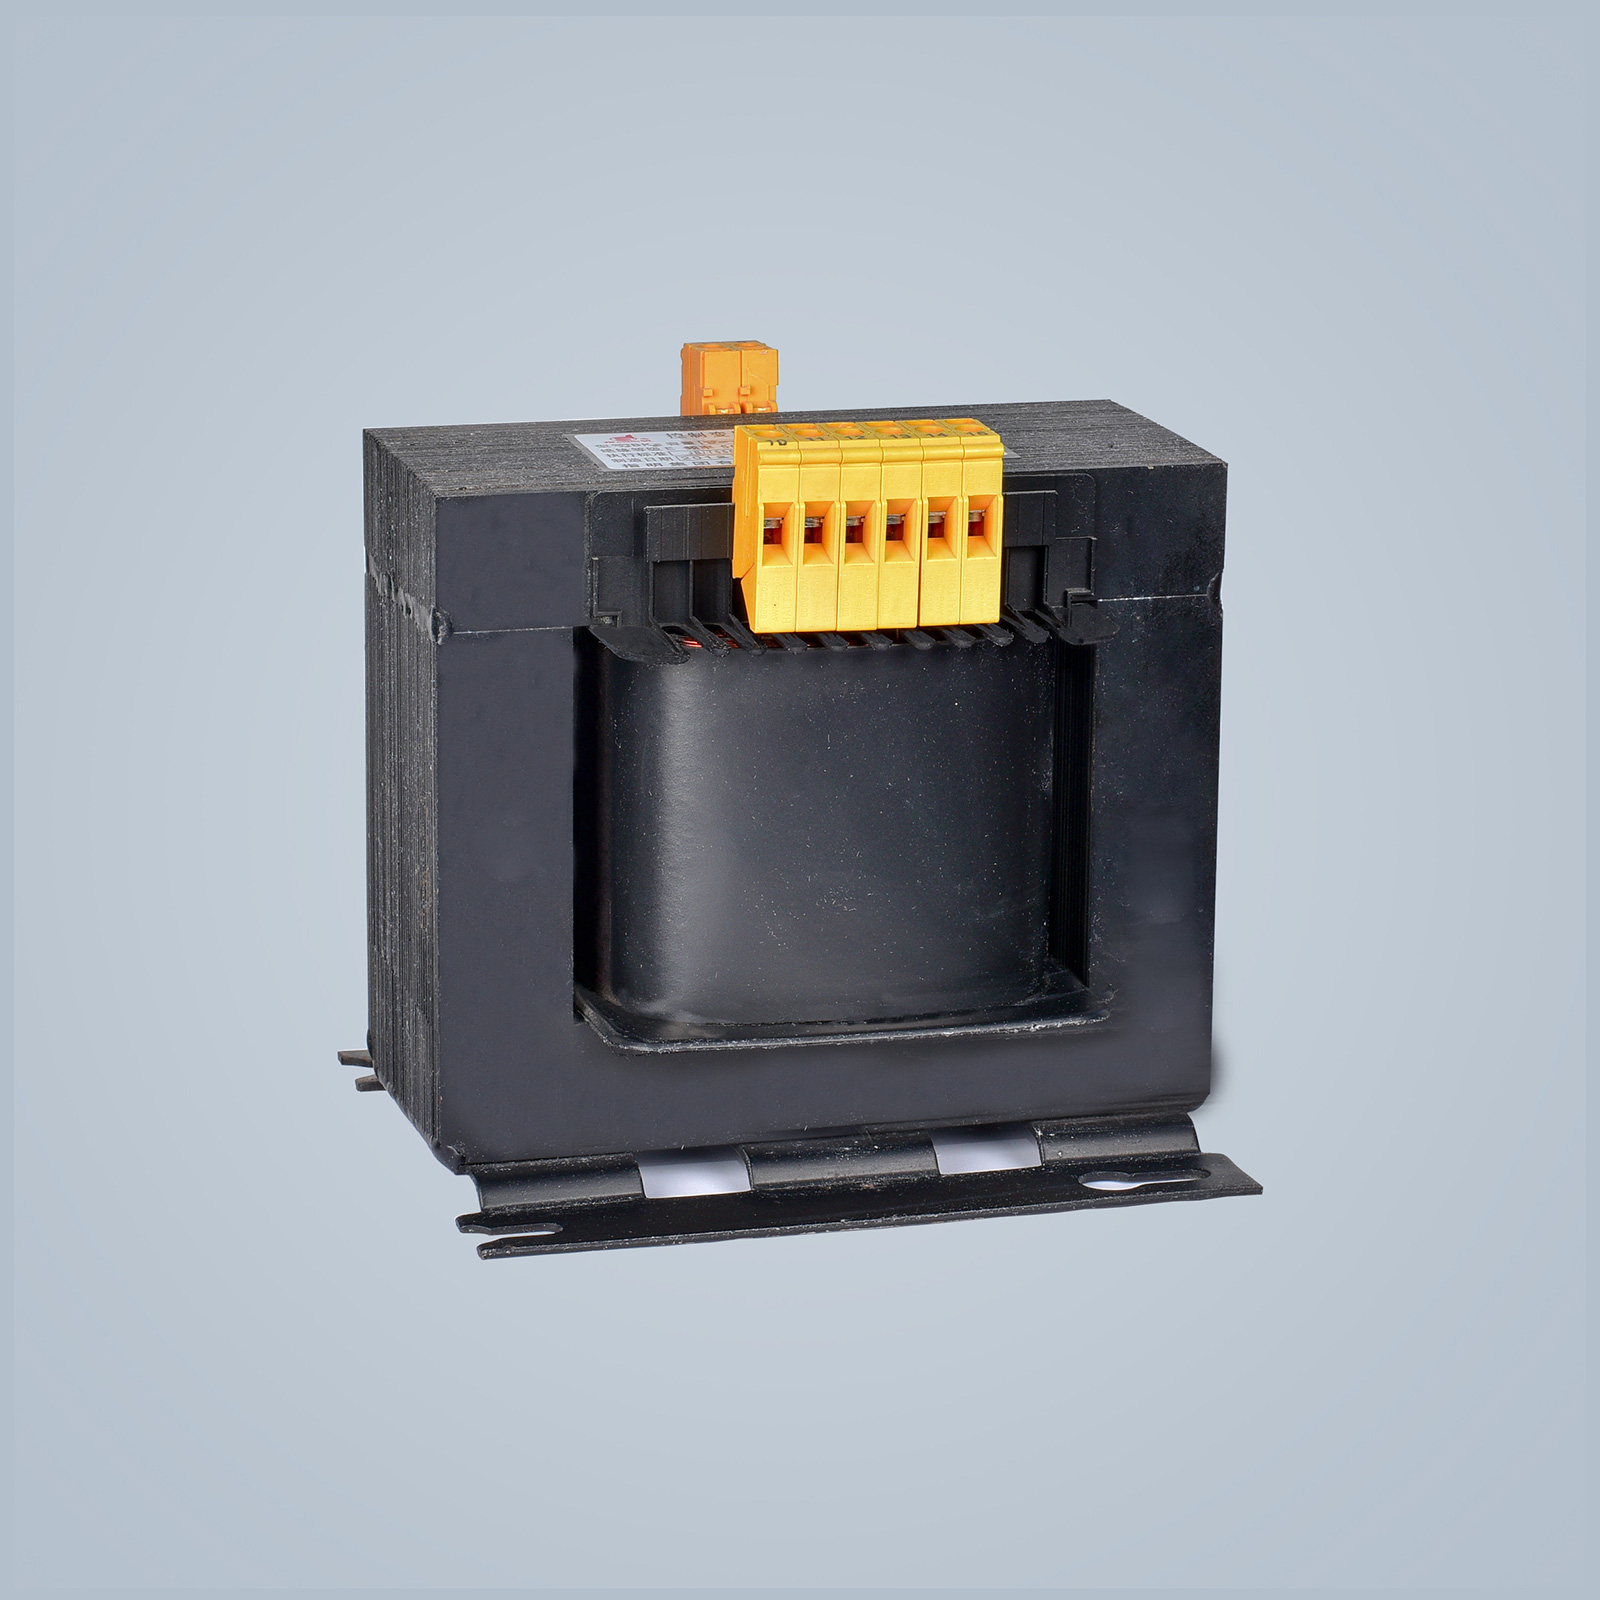 JBK Series Machine control transformer